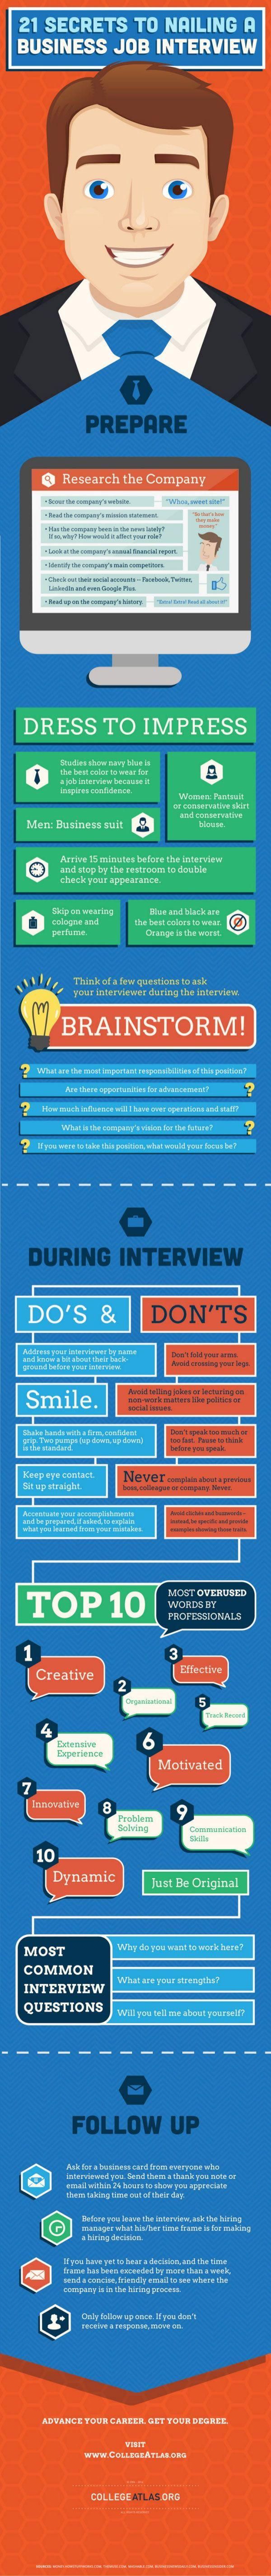 ideas about job interviews interview 21 secrets to nailing a job interview what color is best to wear what